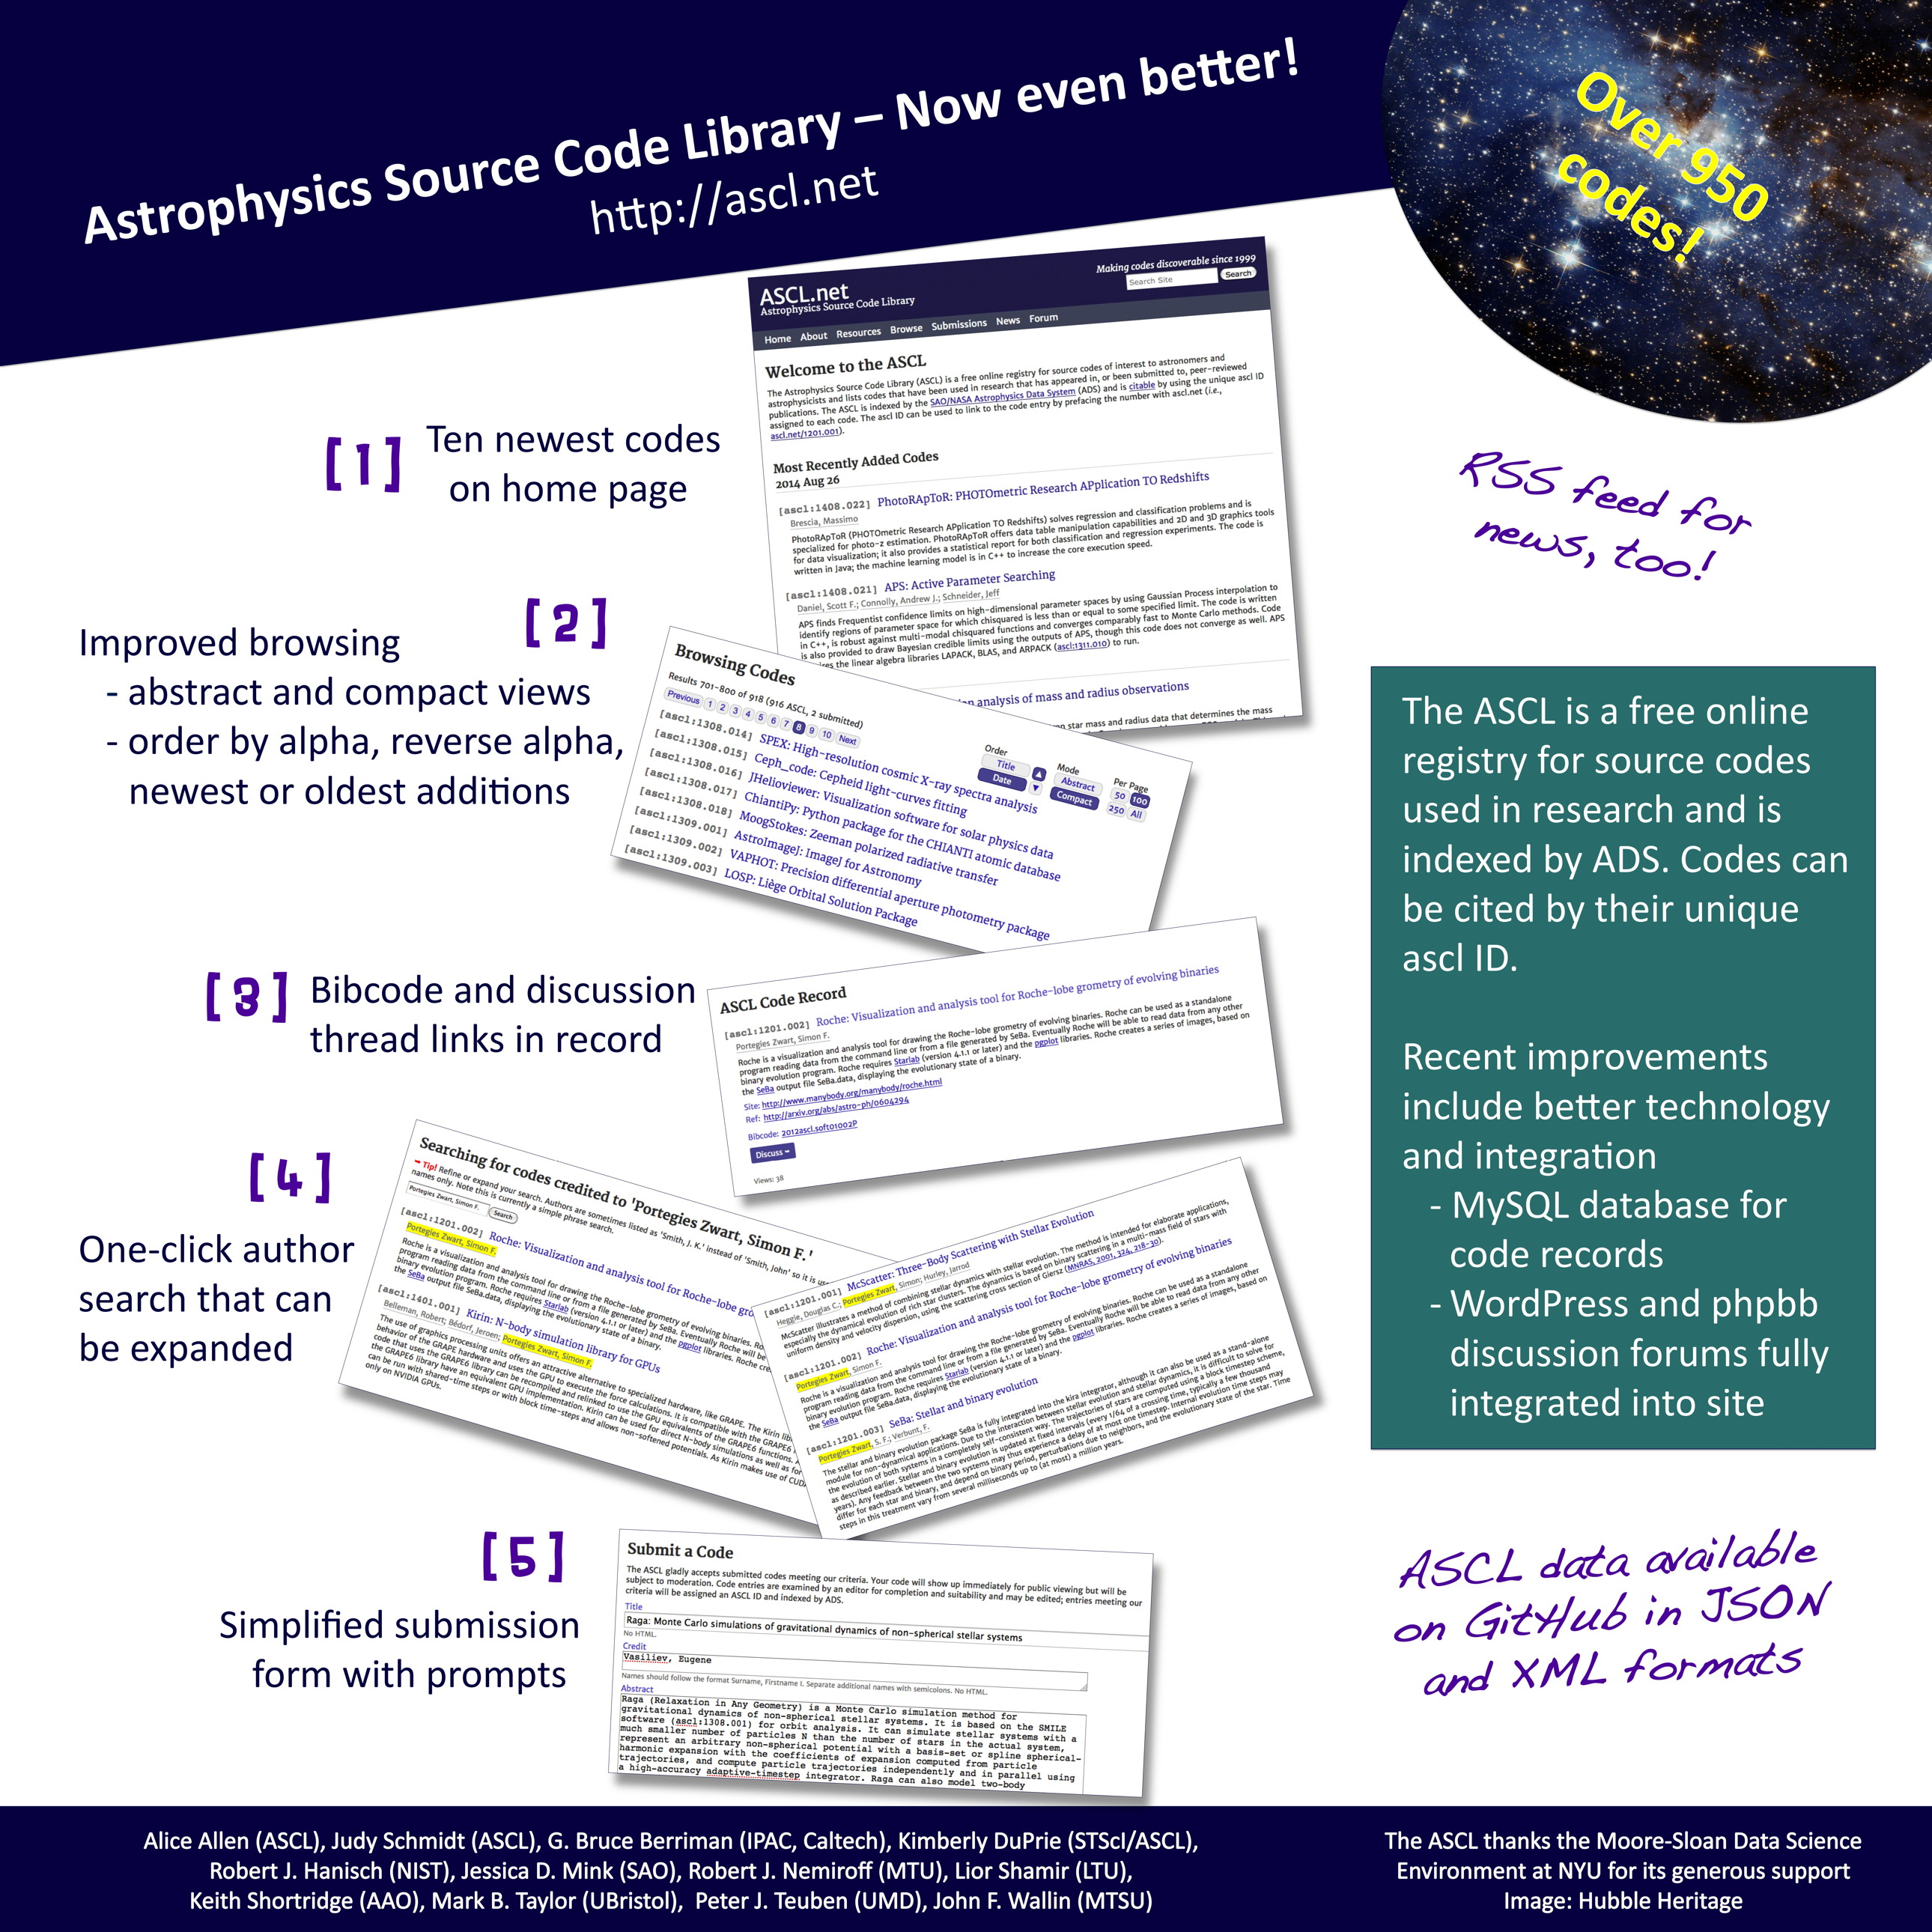 poster discussing ASCL enhancements, including one-click author search and multiple browsing options